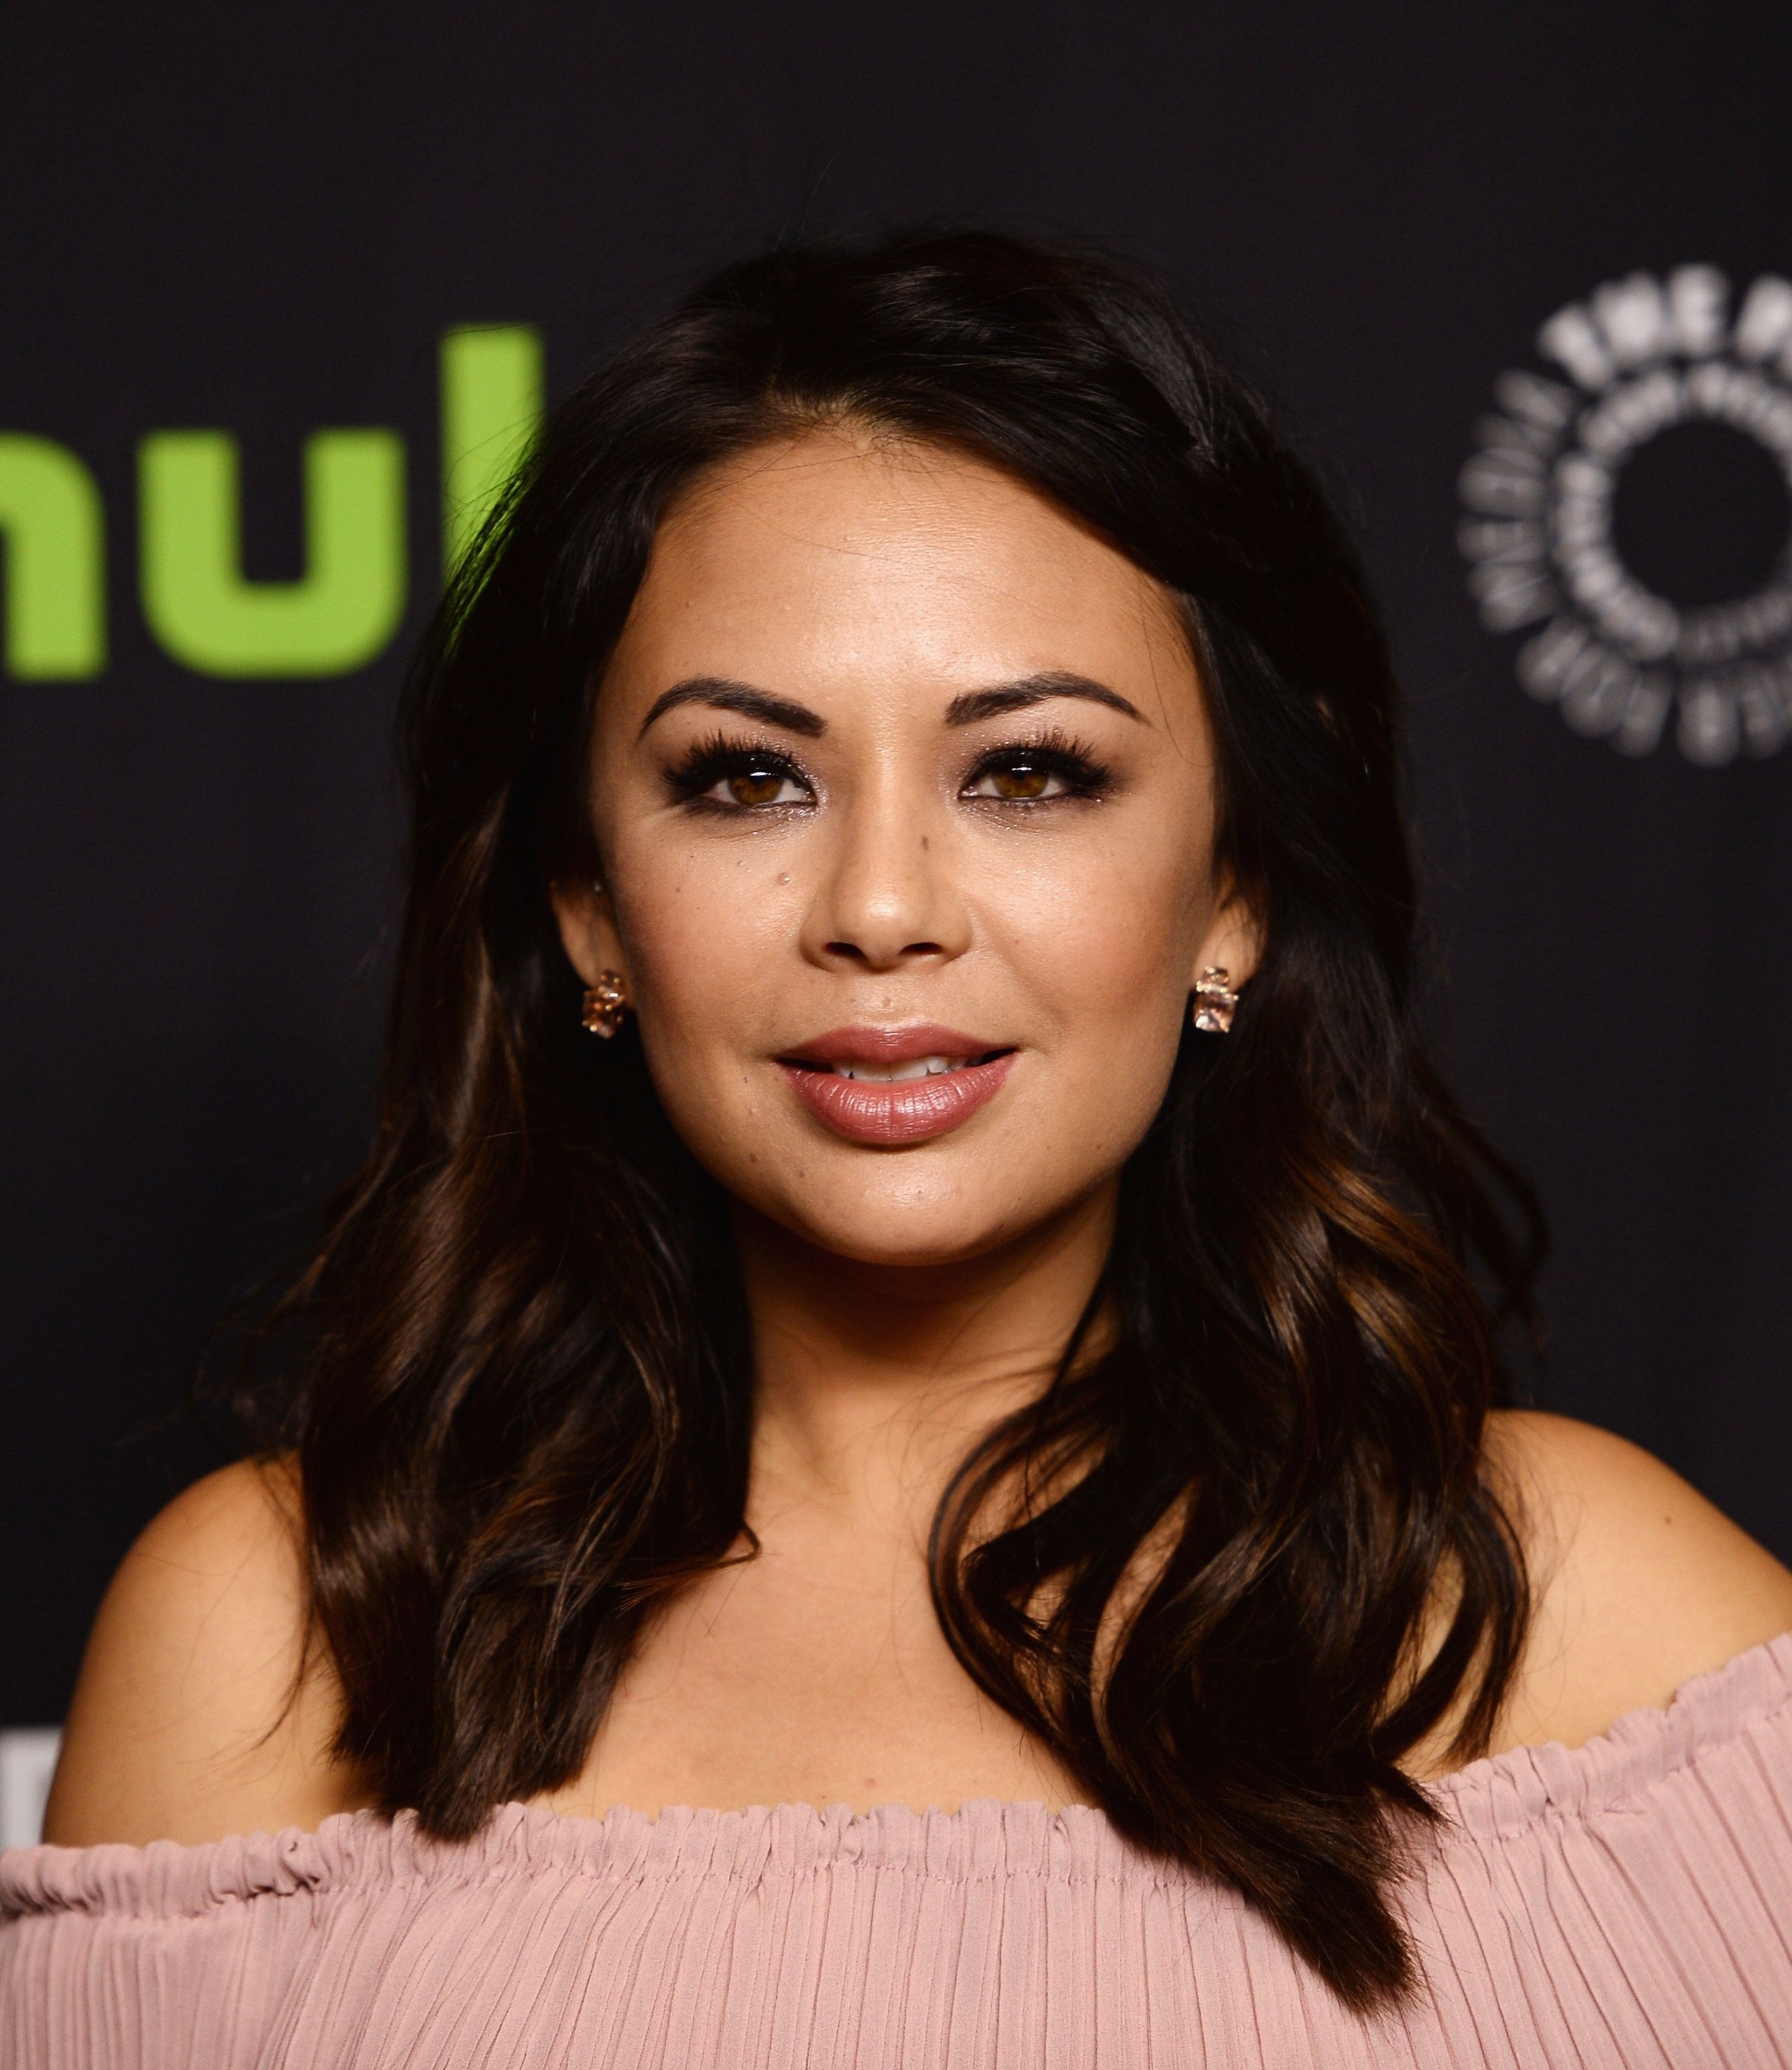 Pretty Little Liars actress Janel Parrish engaged